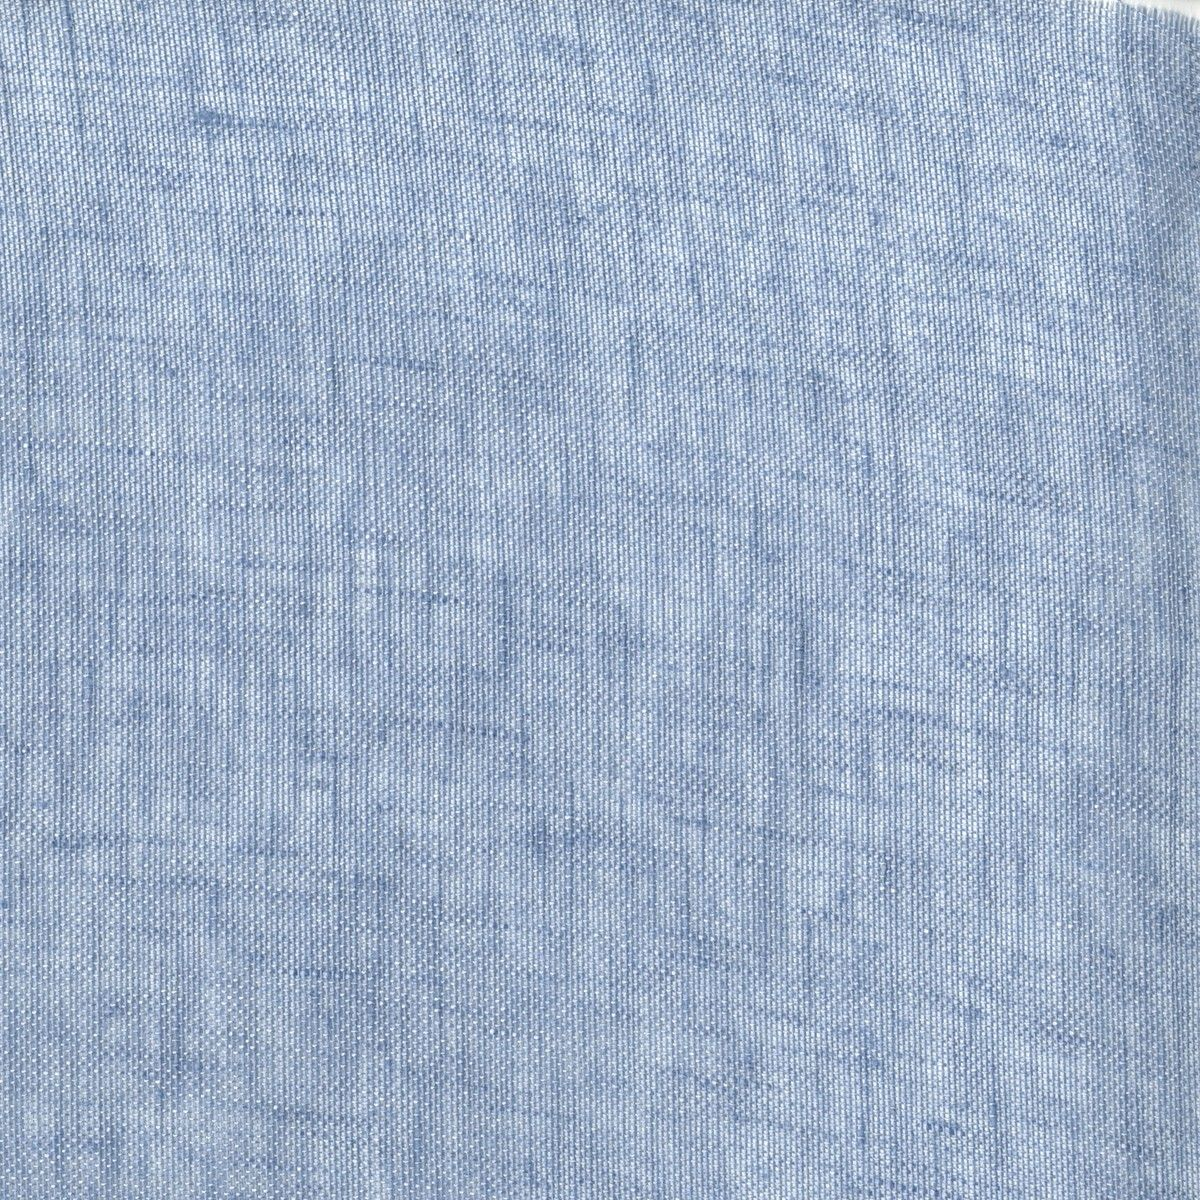 Fabric For Bedding anichini | linen solid mesh in porcelain blue - available in